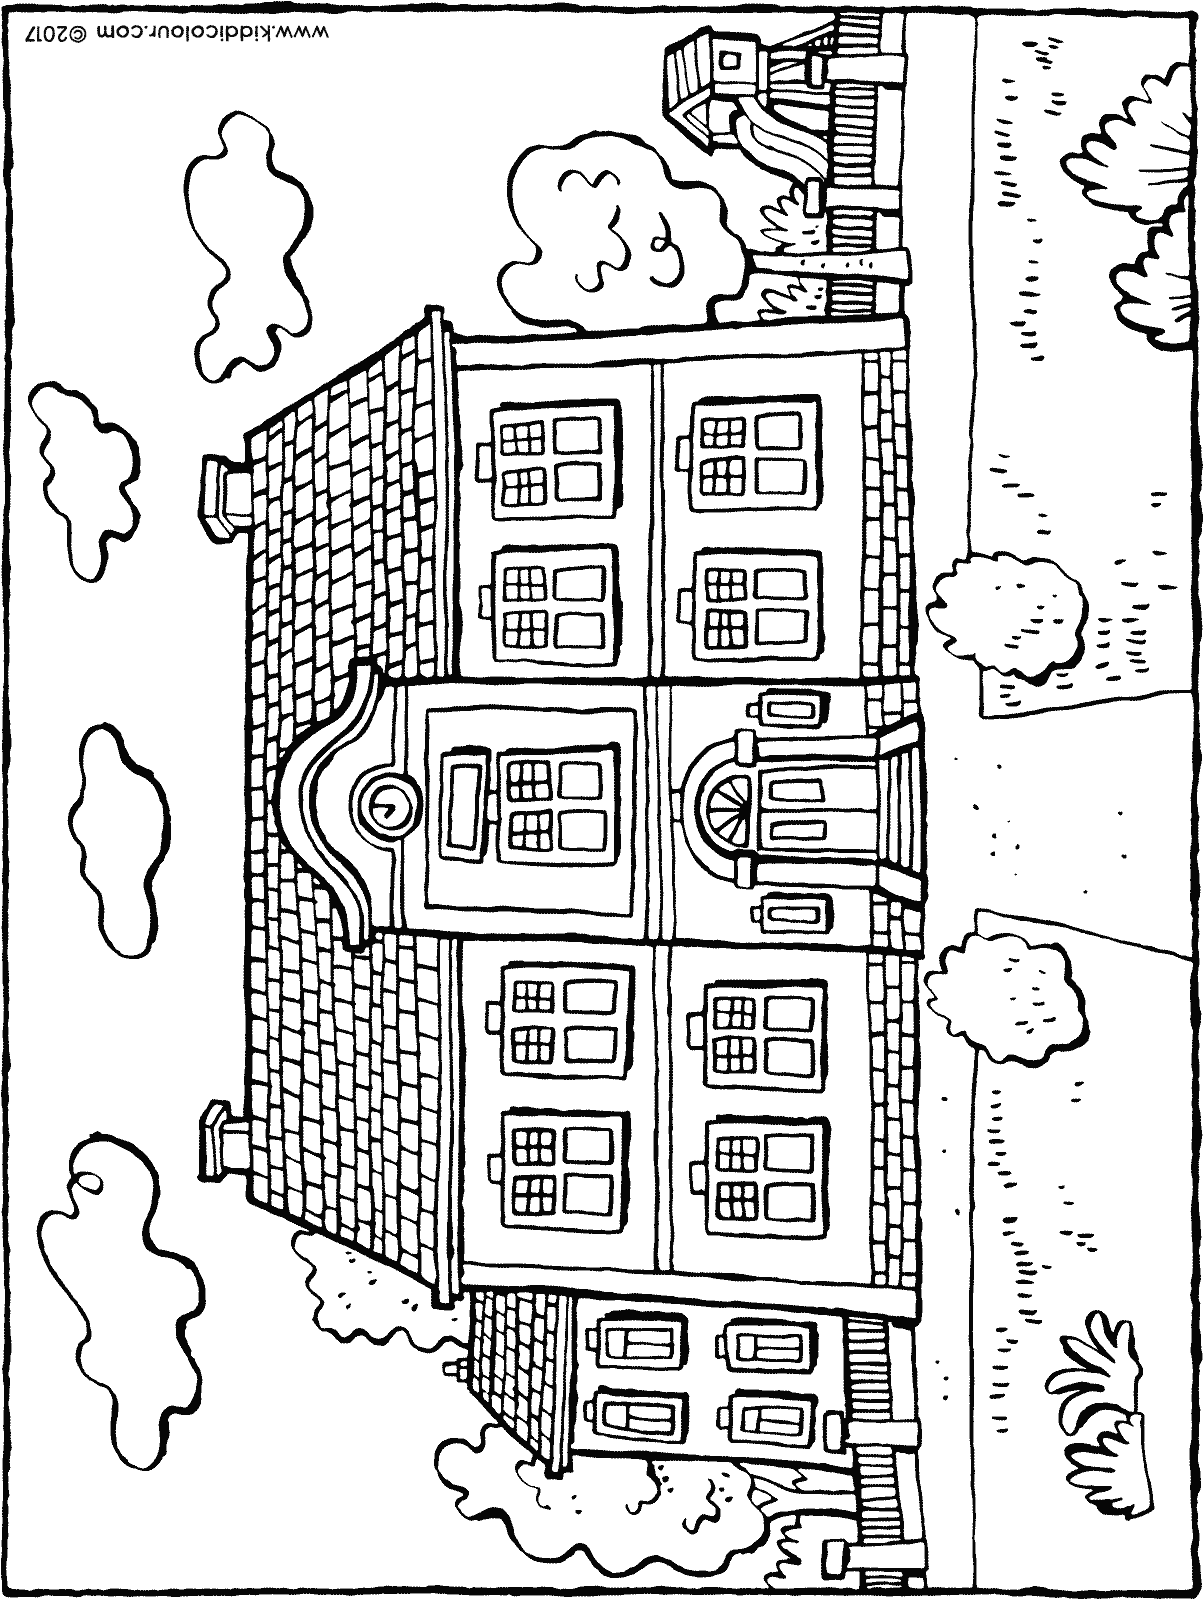 school building colouring page drawing picture 01H